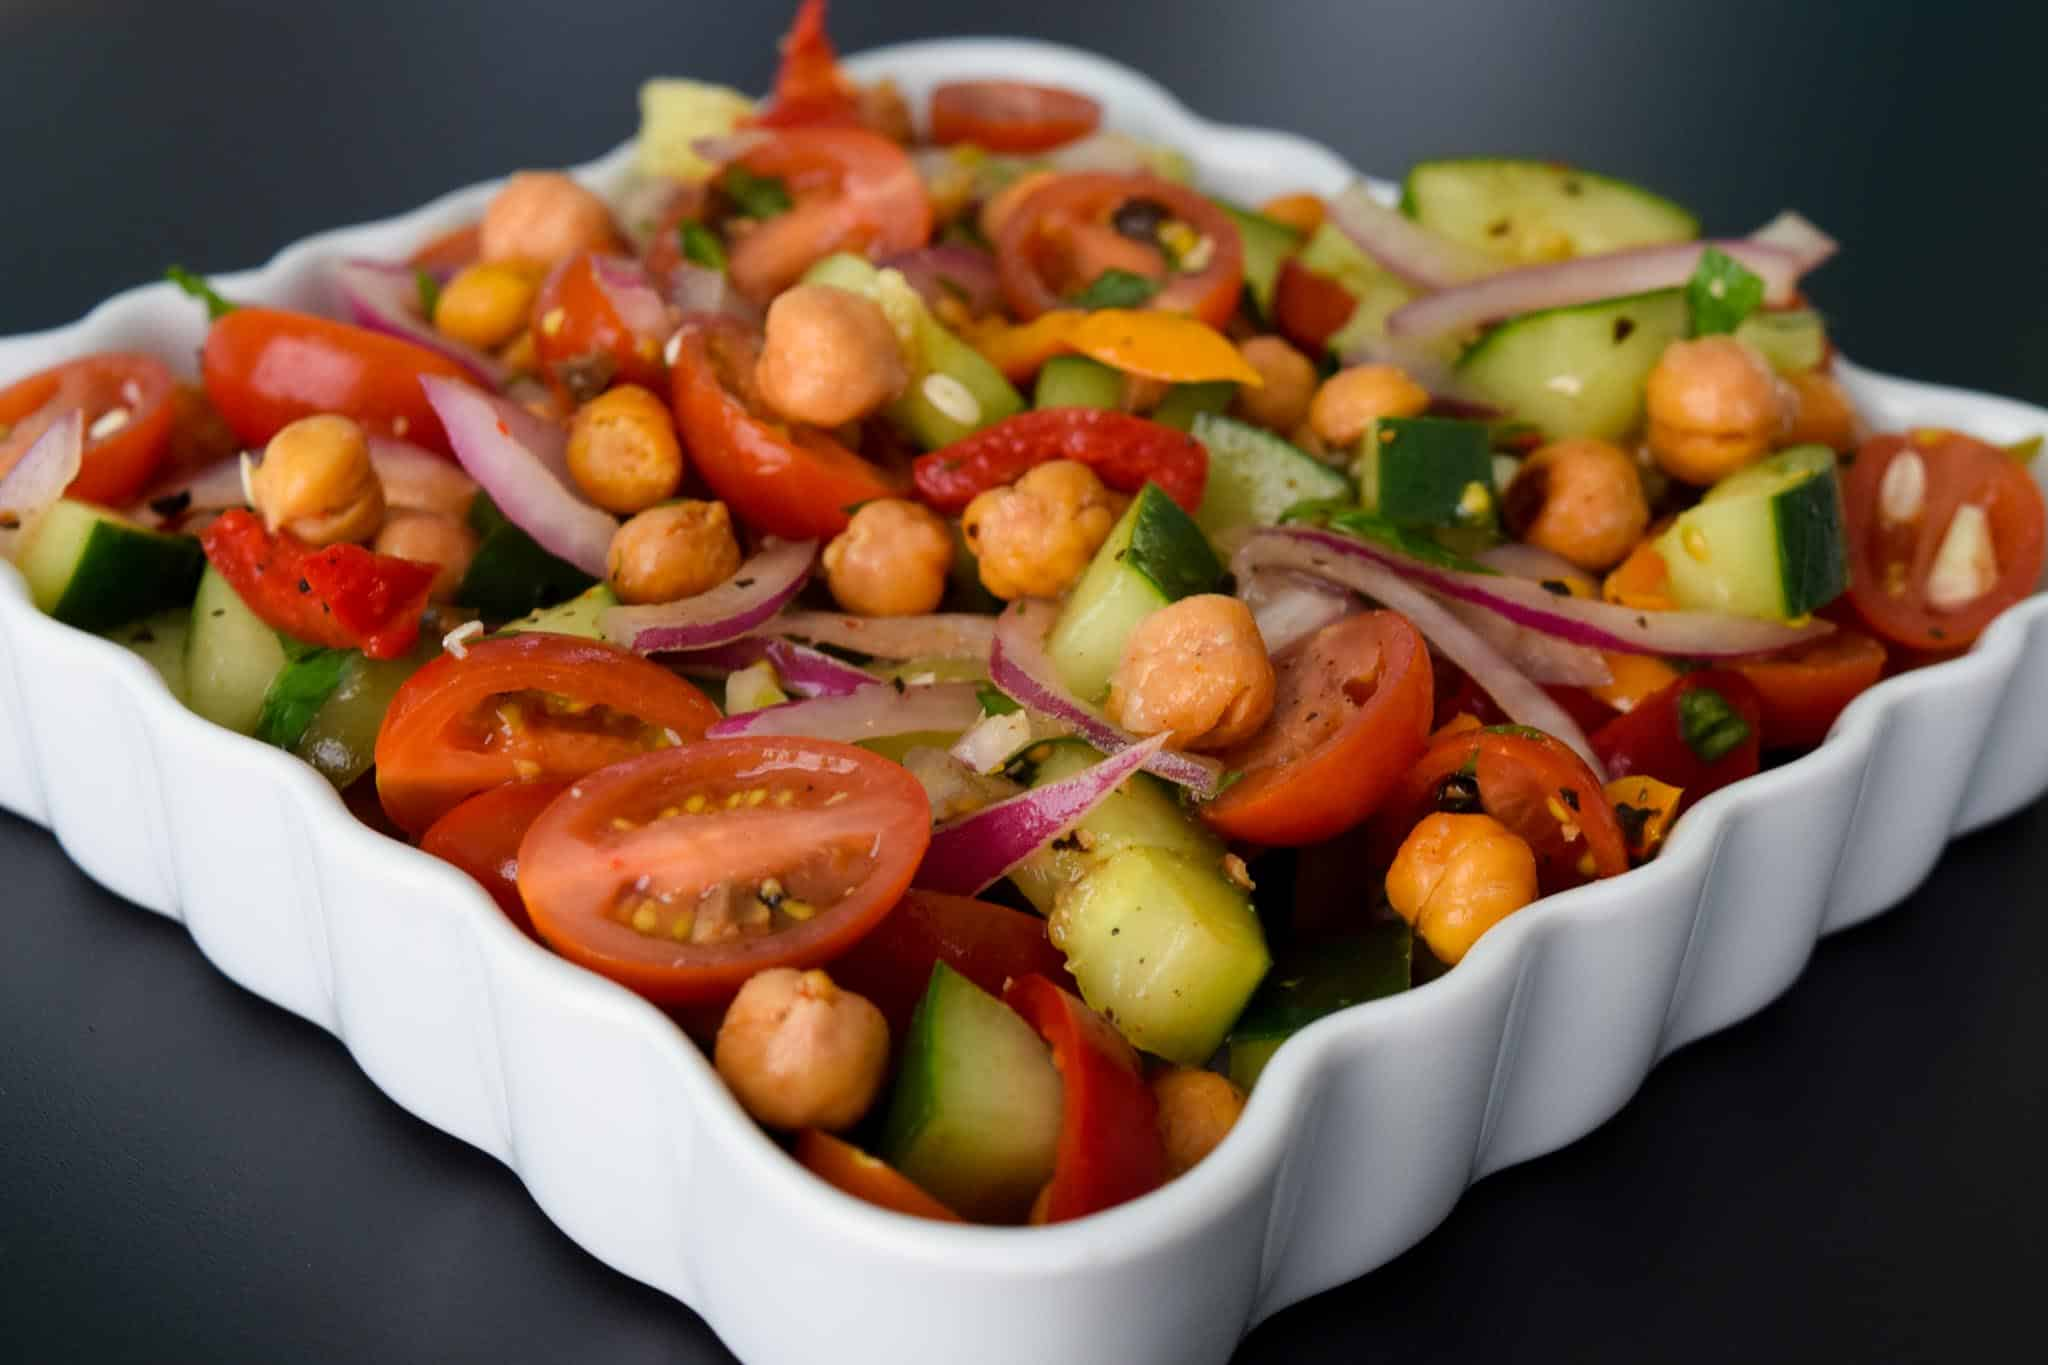 Roasted Chickpea Panzanella Salad in white serving tray close up view